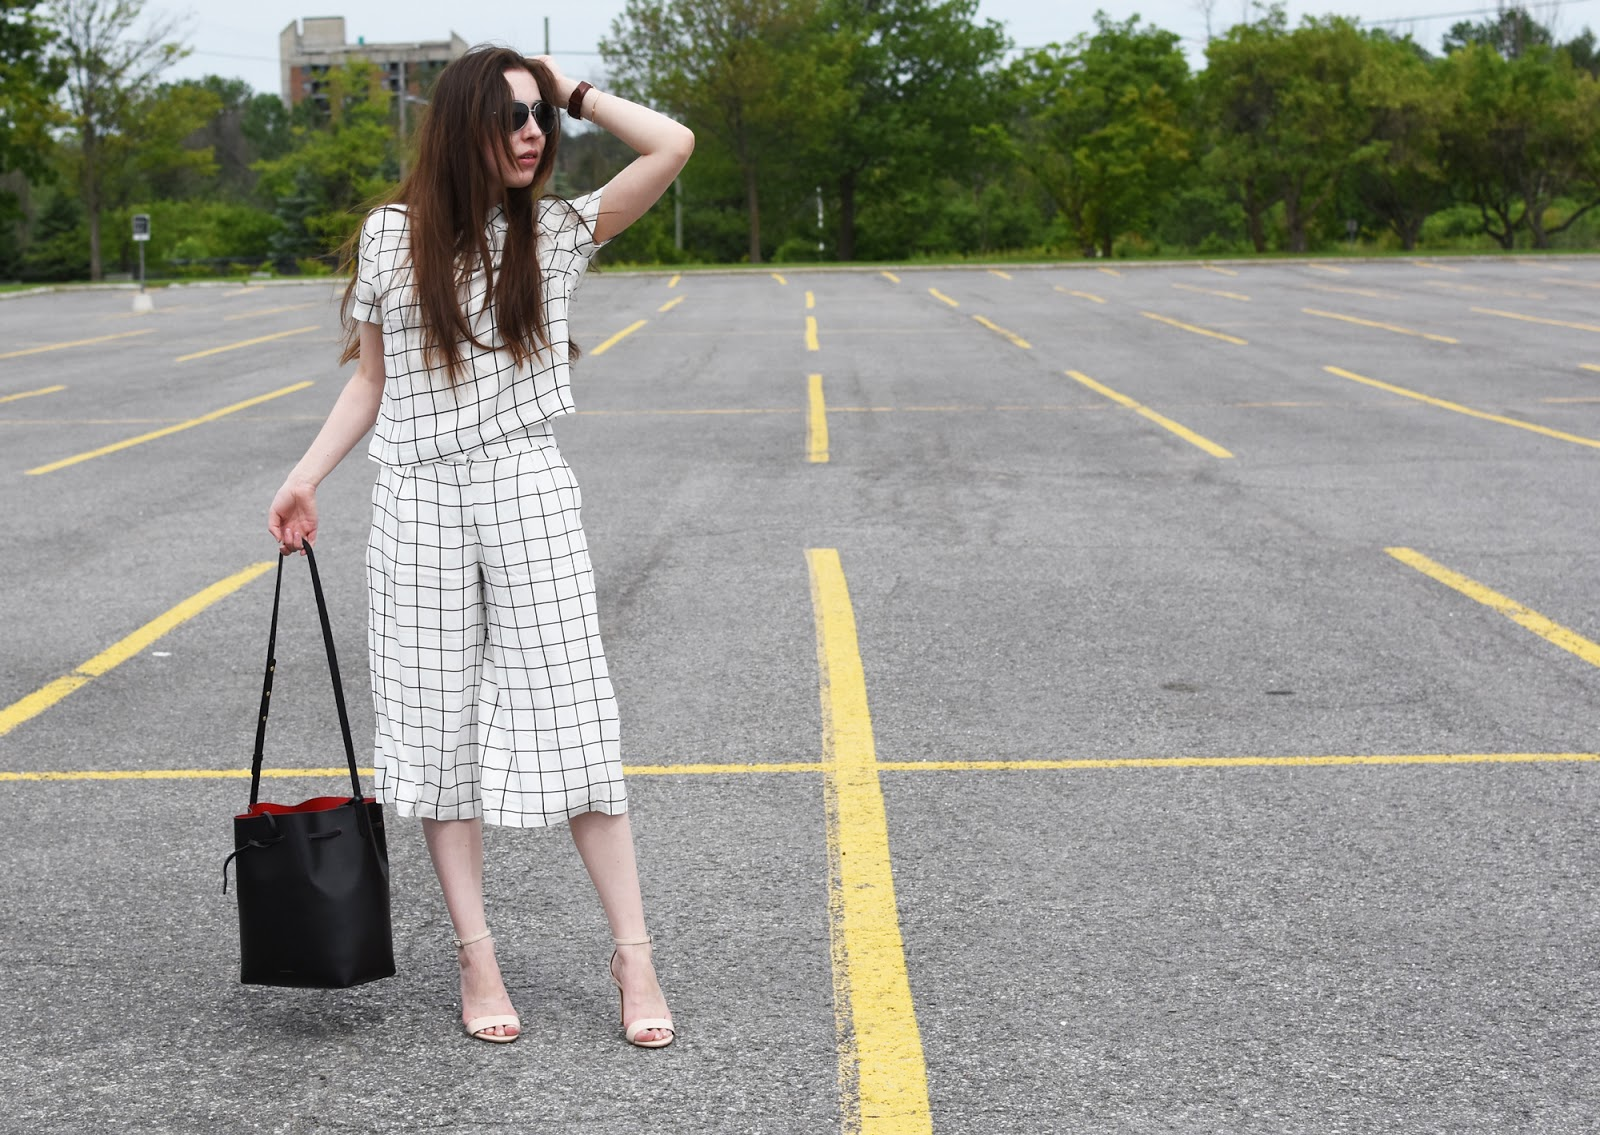 OOTD ft. Forever 21 Grid Set as seen on Diane Kruger, with my Mansur Gavriel bag, Warby Parker Crossfield sunnies, Aldo shoes, and Daniel Wellington watch.